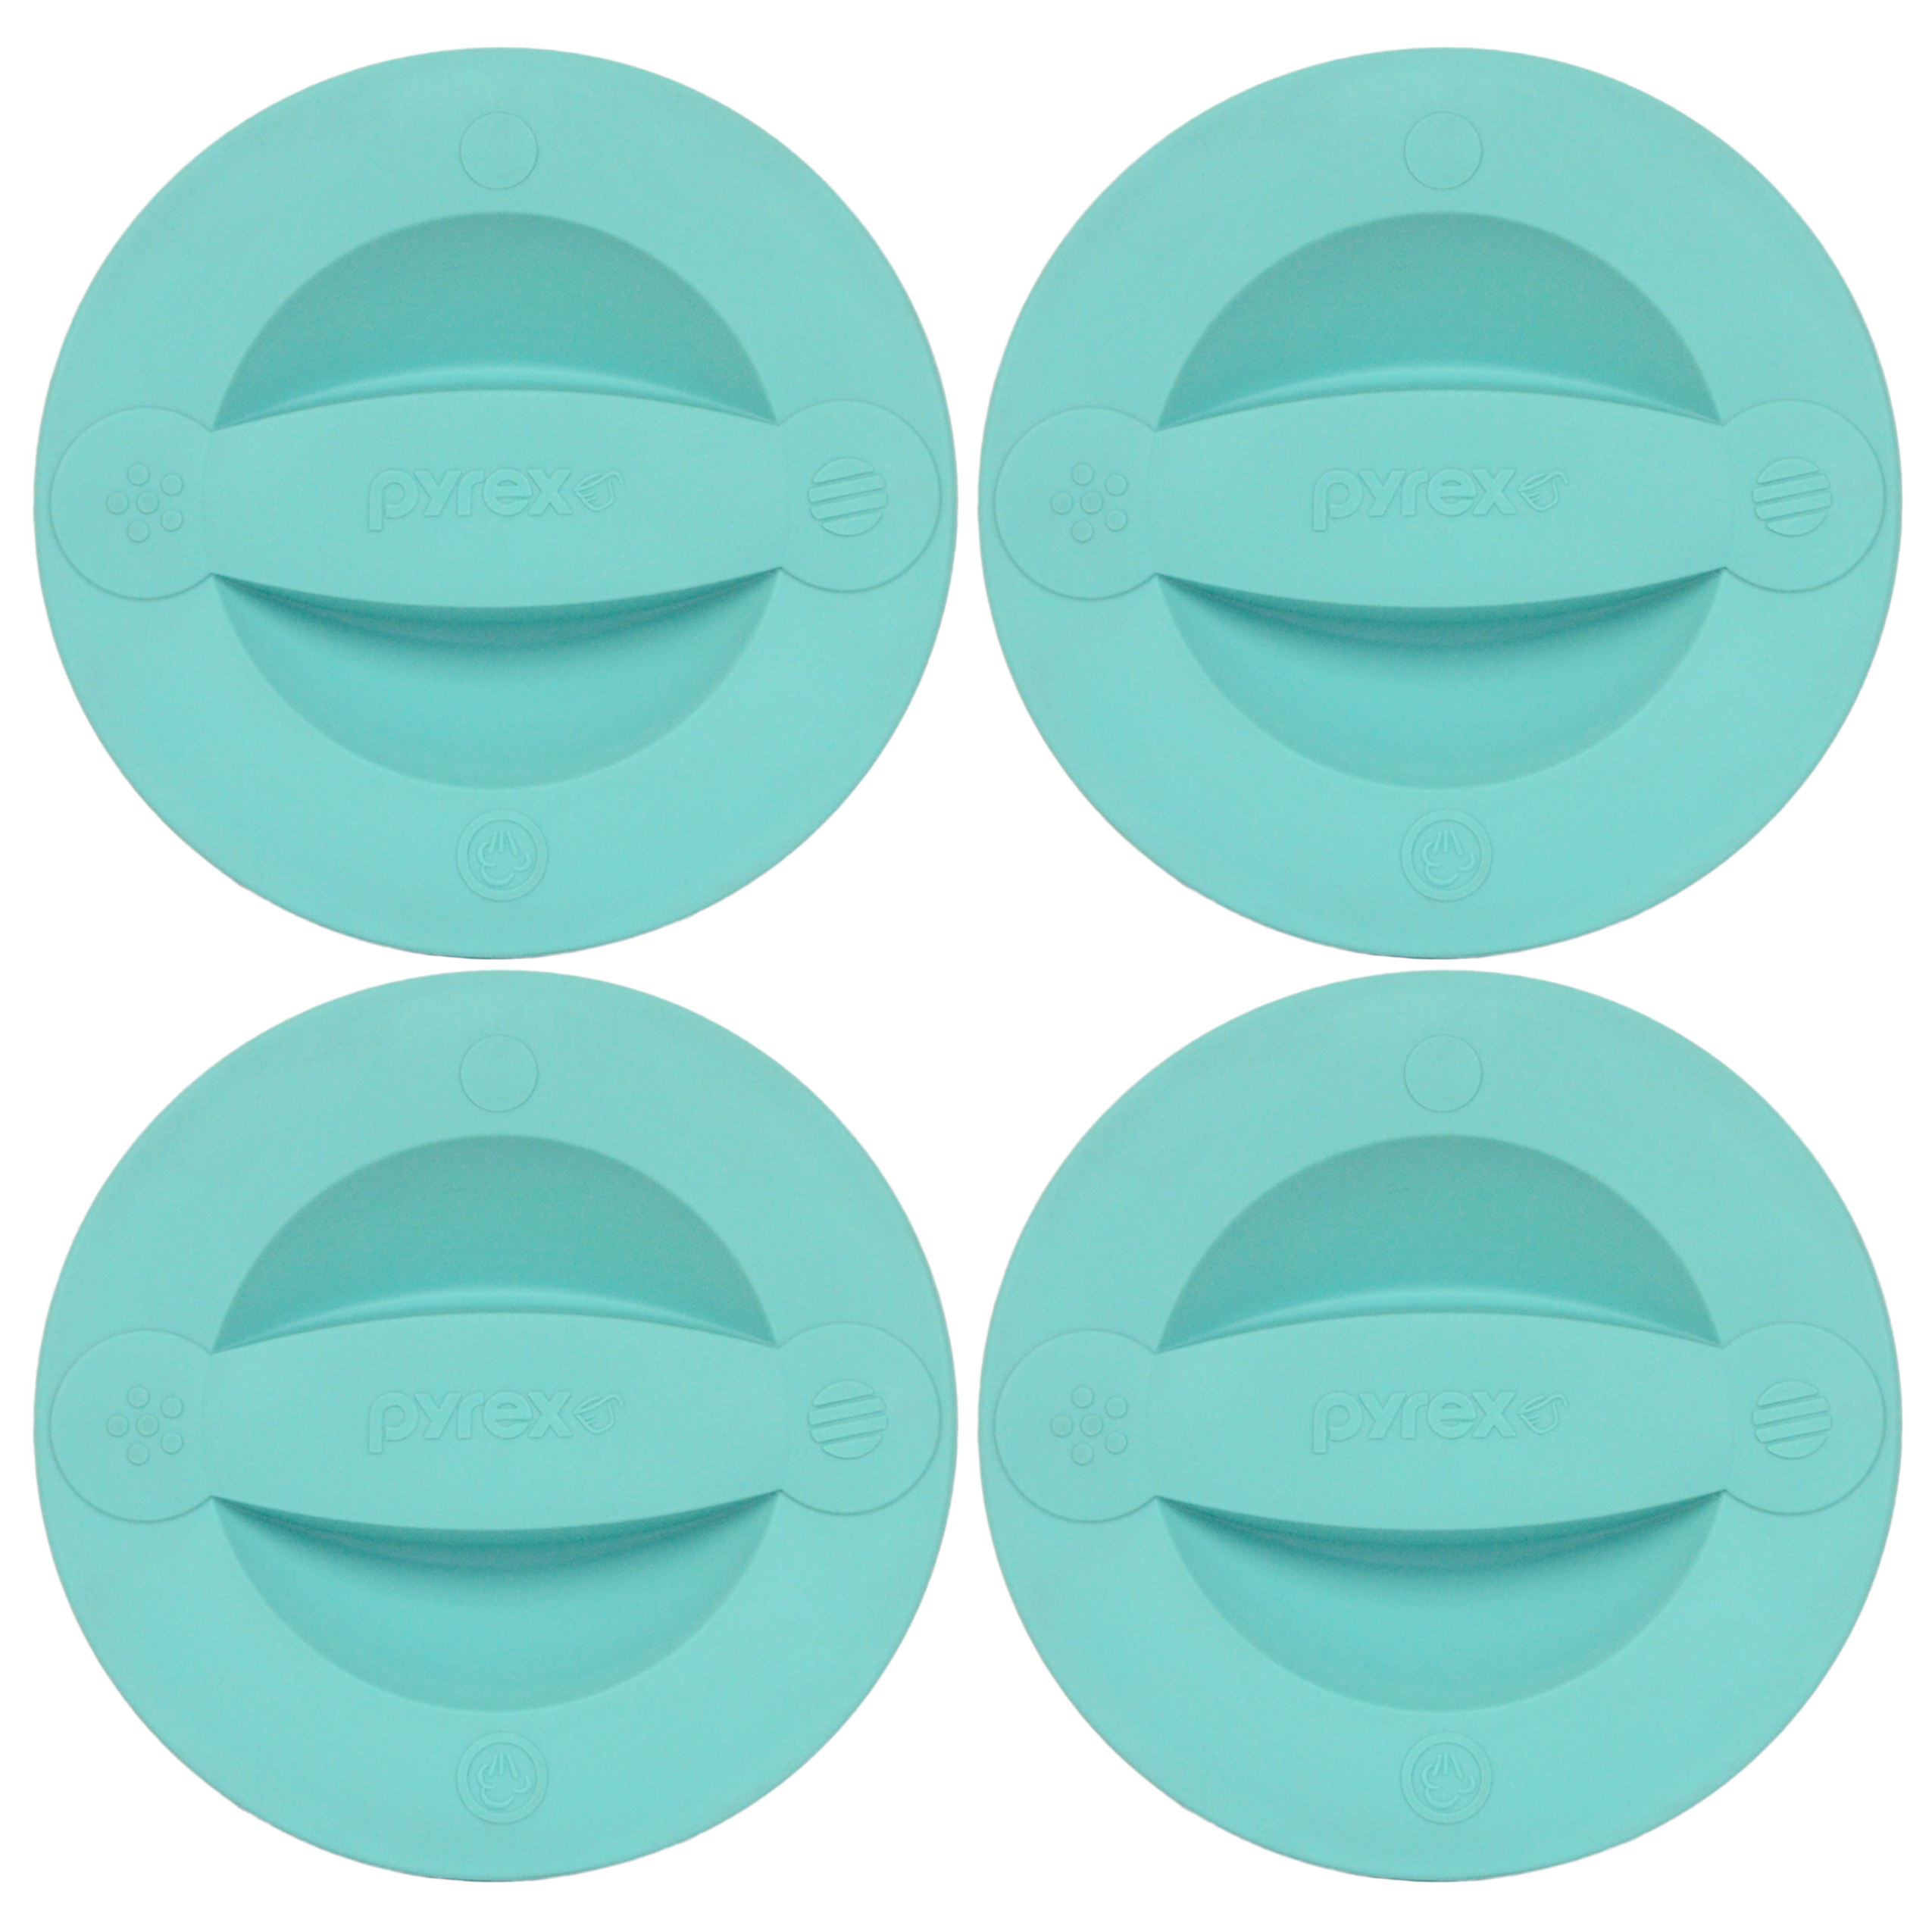 Pyrex Replacement Lid 516-PC Turquoise Measuring Cup Cover (4-Pack) for Pyrex 2-Cup Glass Measuring Cup (Sold Separately)